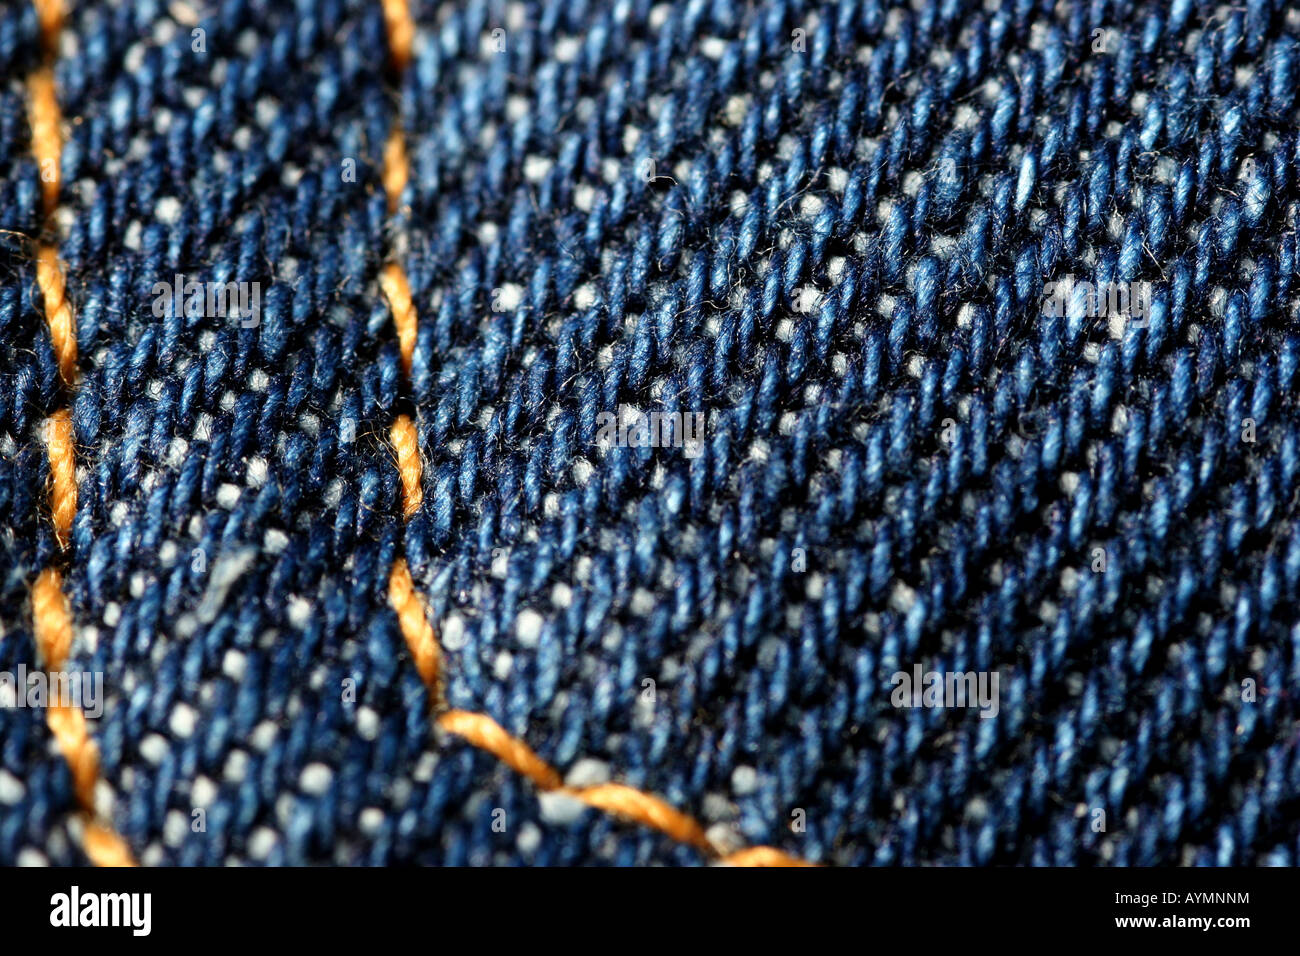 macro shot of denim pocket - Stock Image